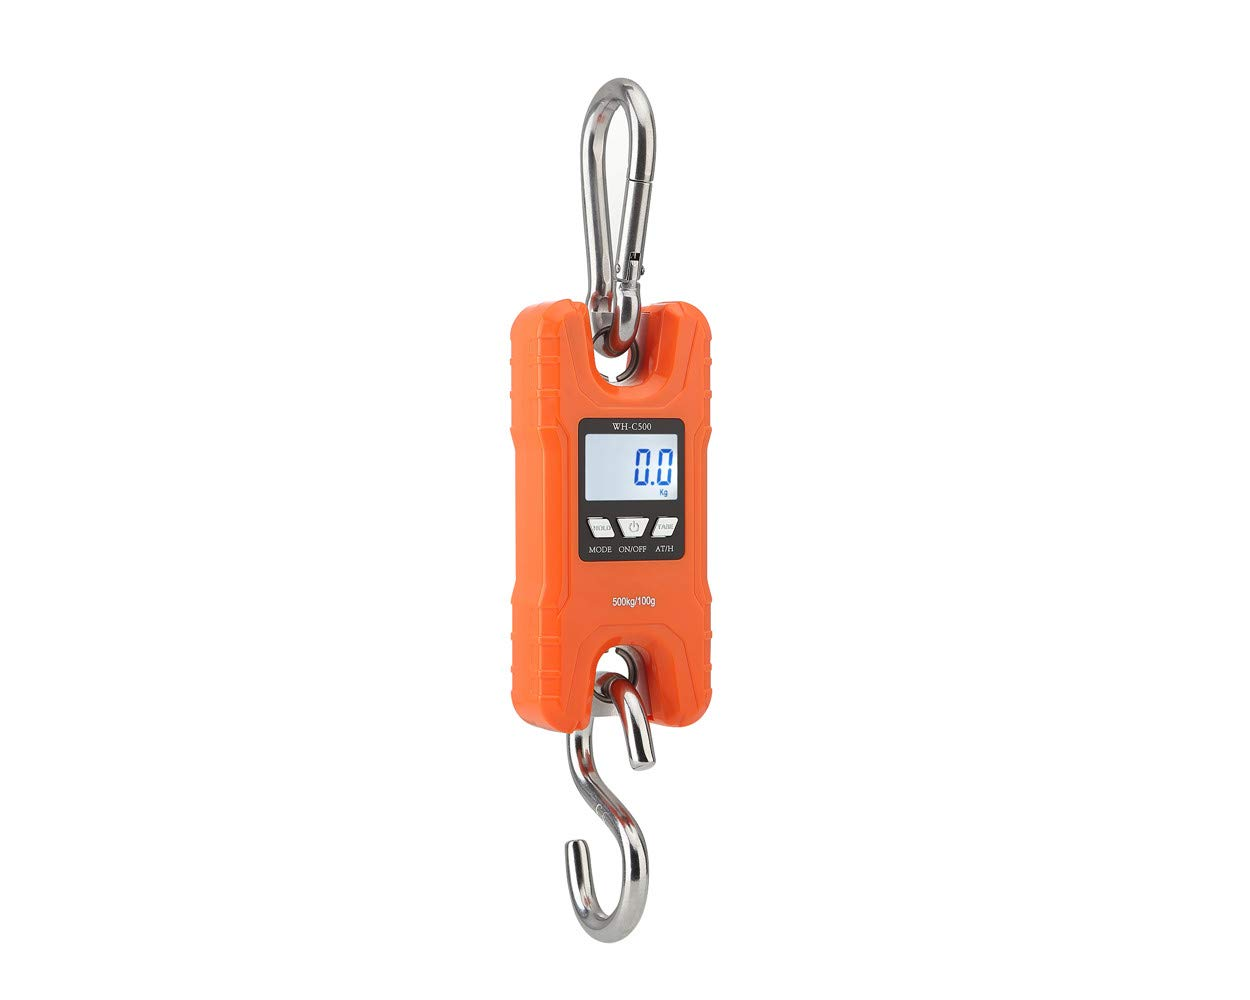 Mini Crane Scale,Klau Portable 500 kg / 1000 lb Heavy Duty Digital Hanging Scales LCD Display with Backlight for Home Farm Market Fishing Hunting Orange by Klau